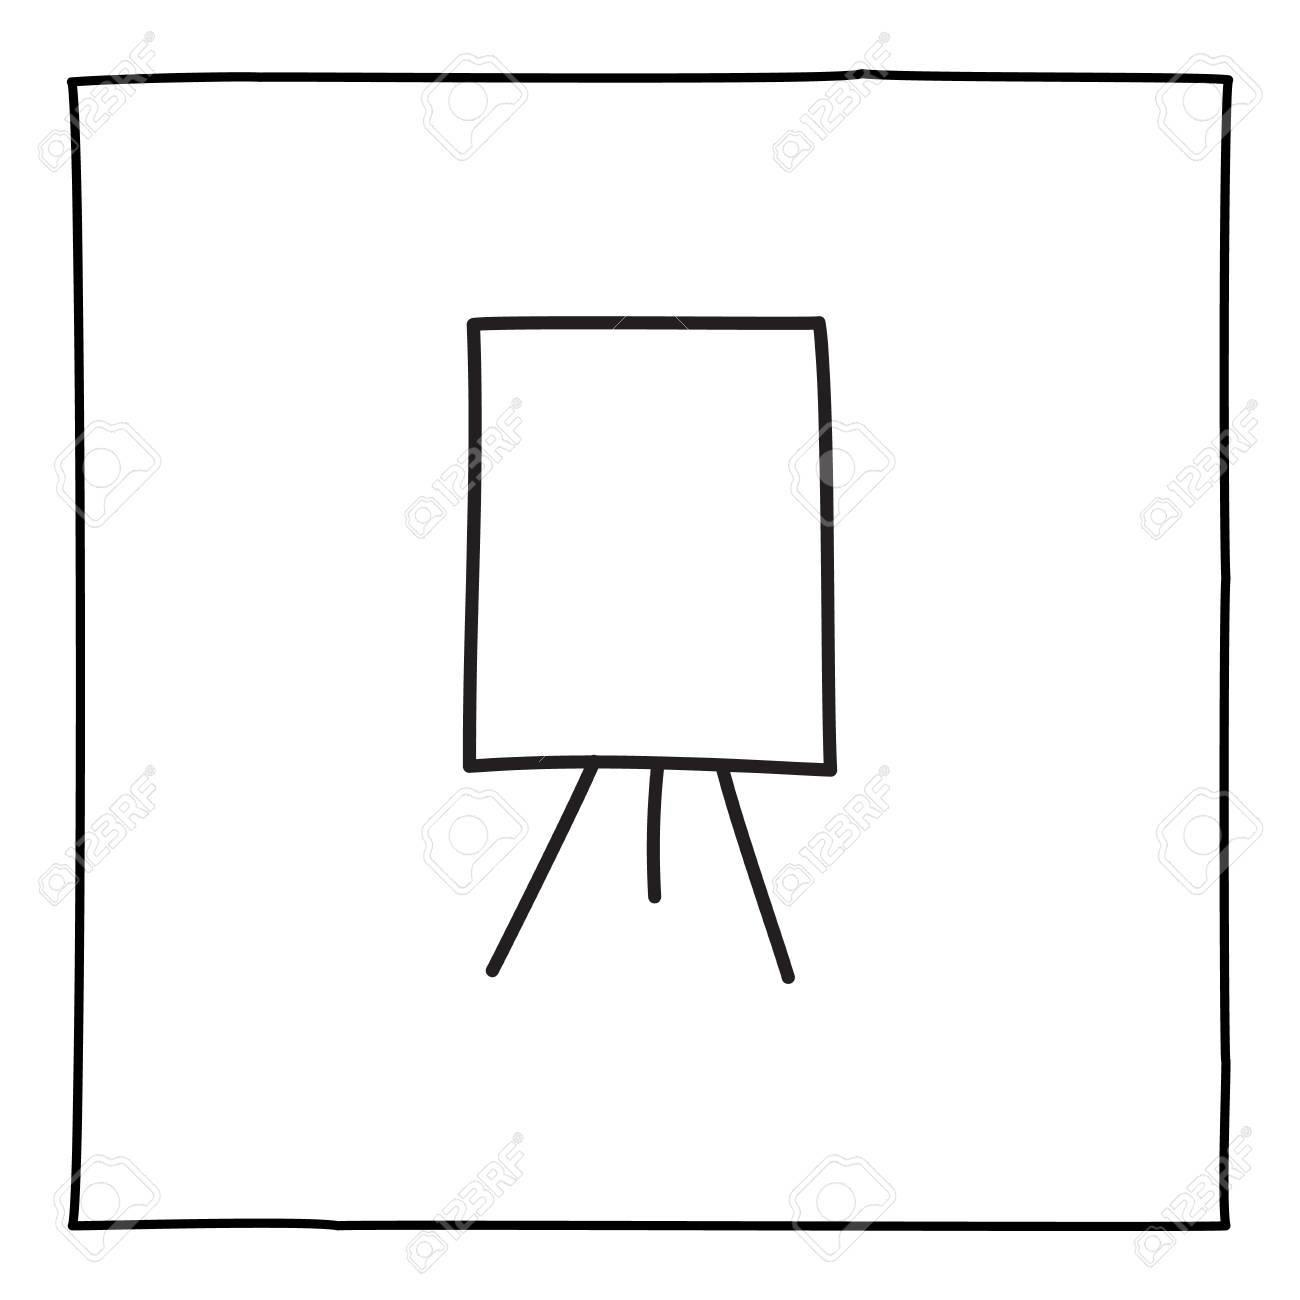 Doodle artist easel icon hand drawn with thin line in minimalistic style, display symbol isolated on white background. Vector illustration - 112405875